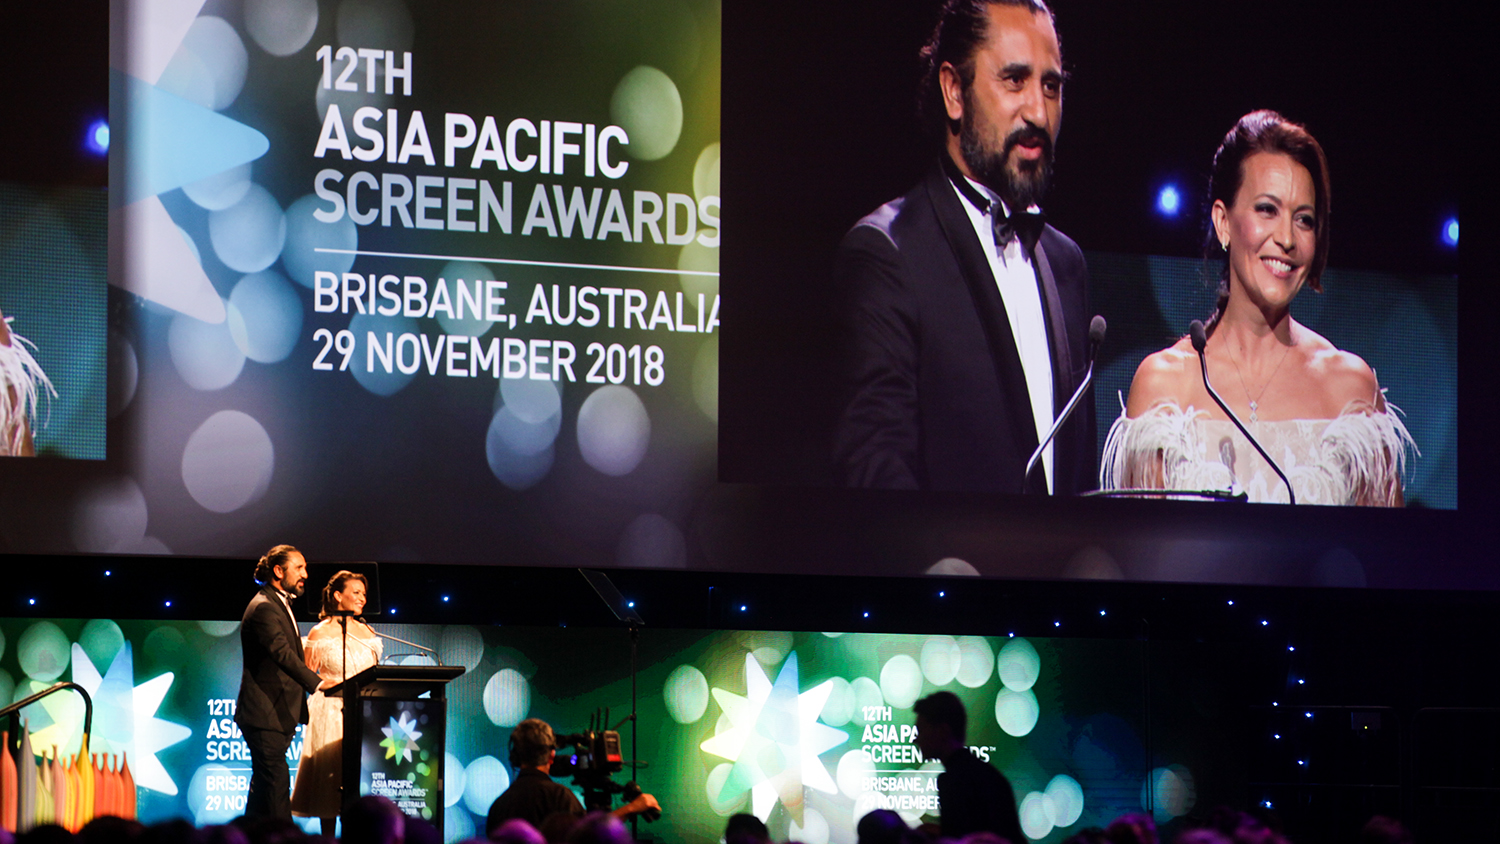 Sofie Formica and Cliff Curtis hosts for the APSA held at the Brisbane Convention and Exhibition Centre